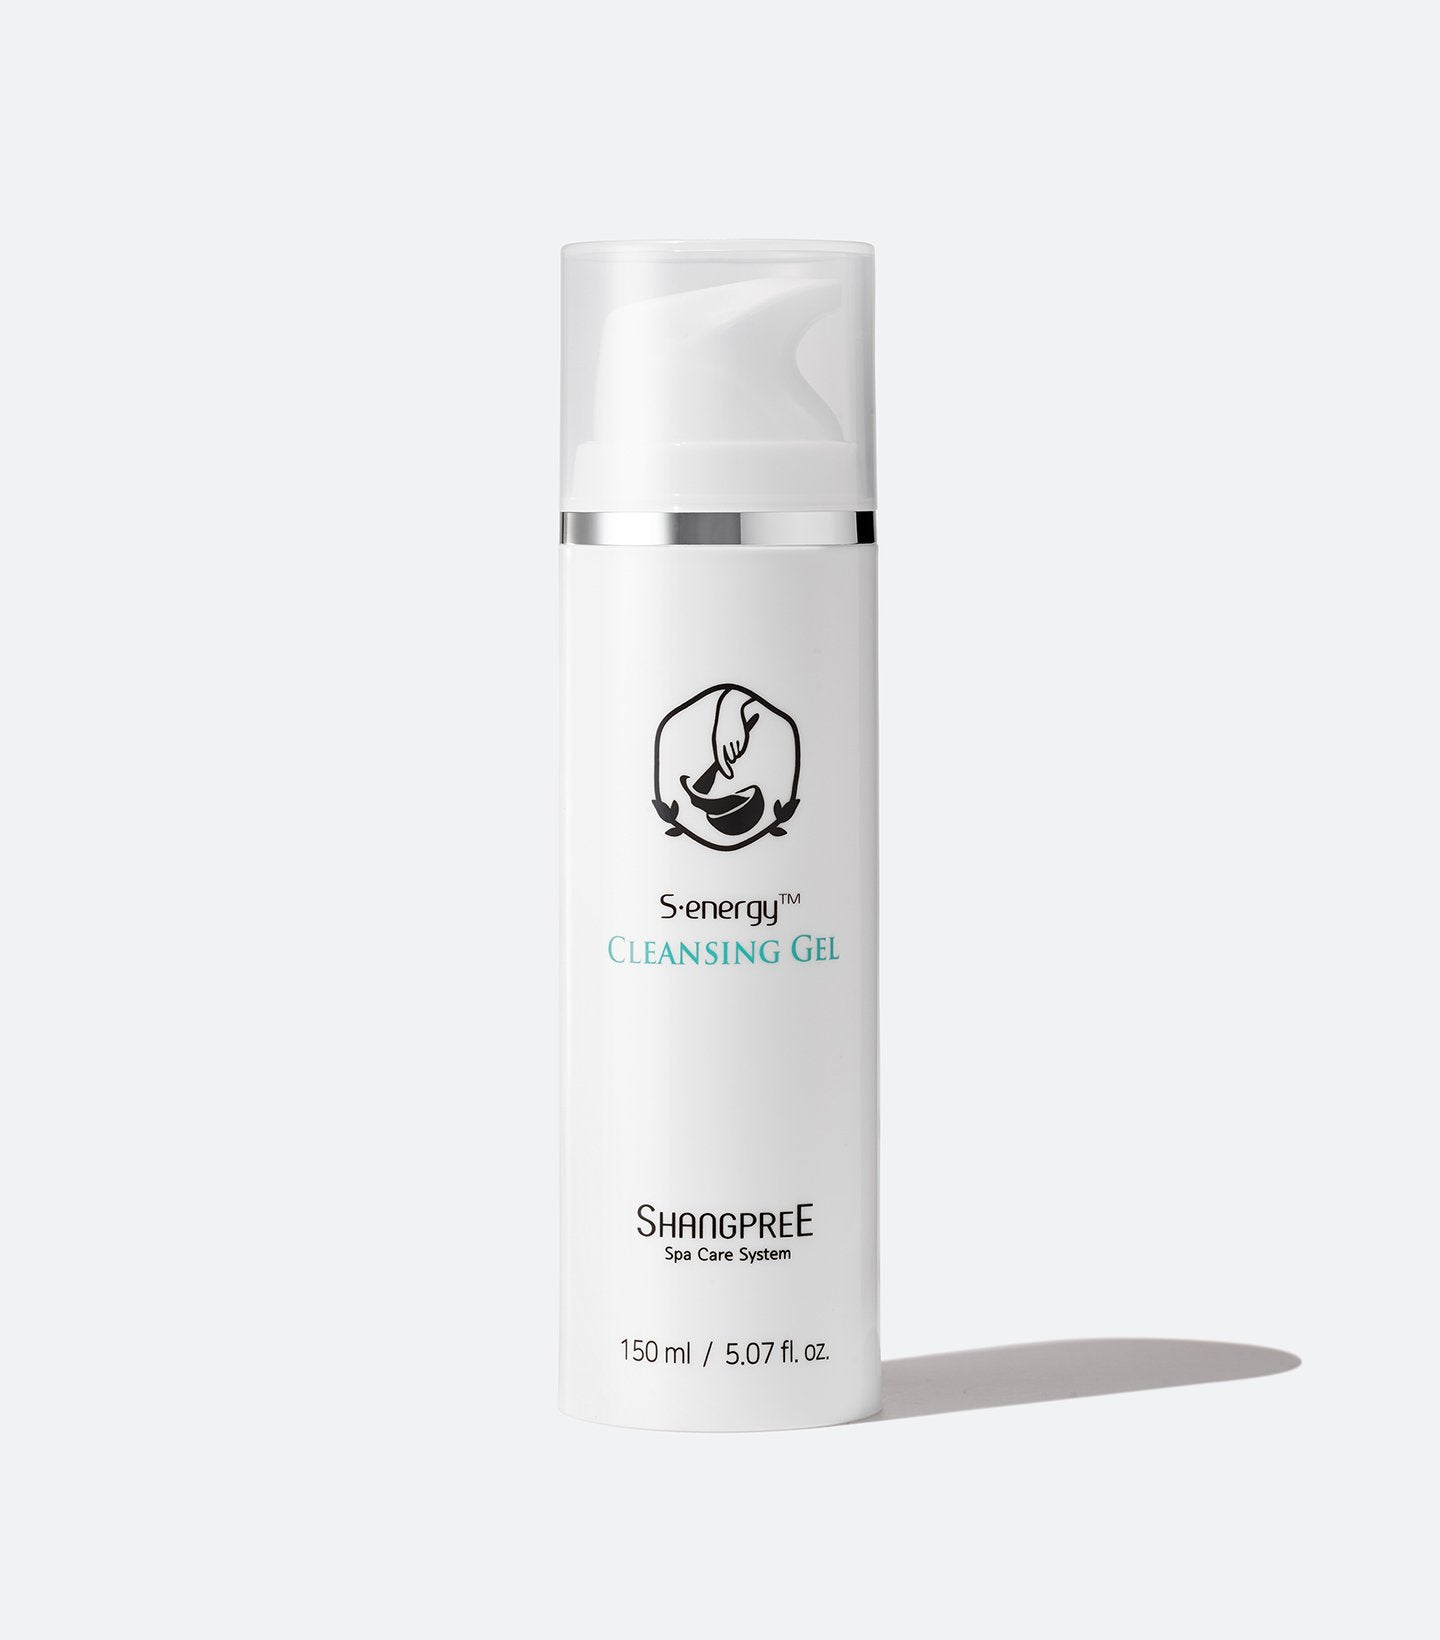 S-energy Cleansing Gel